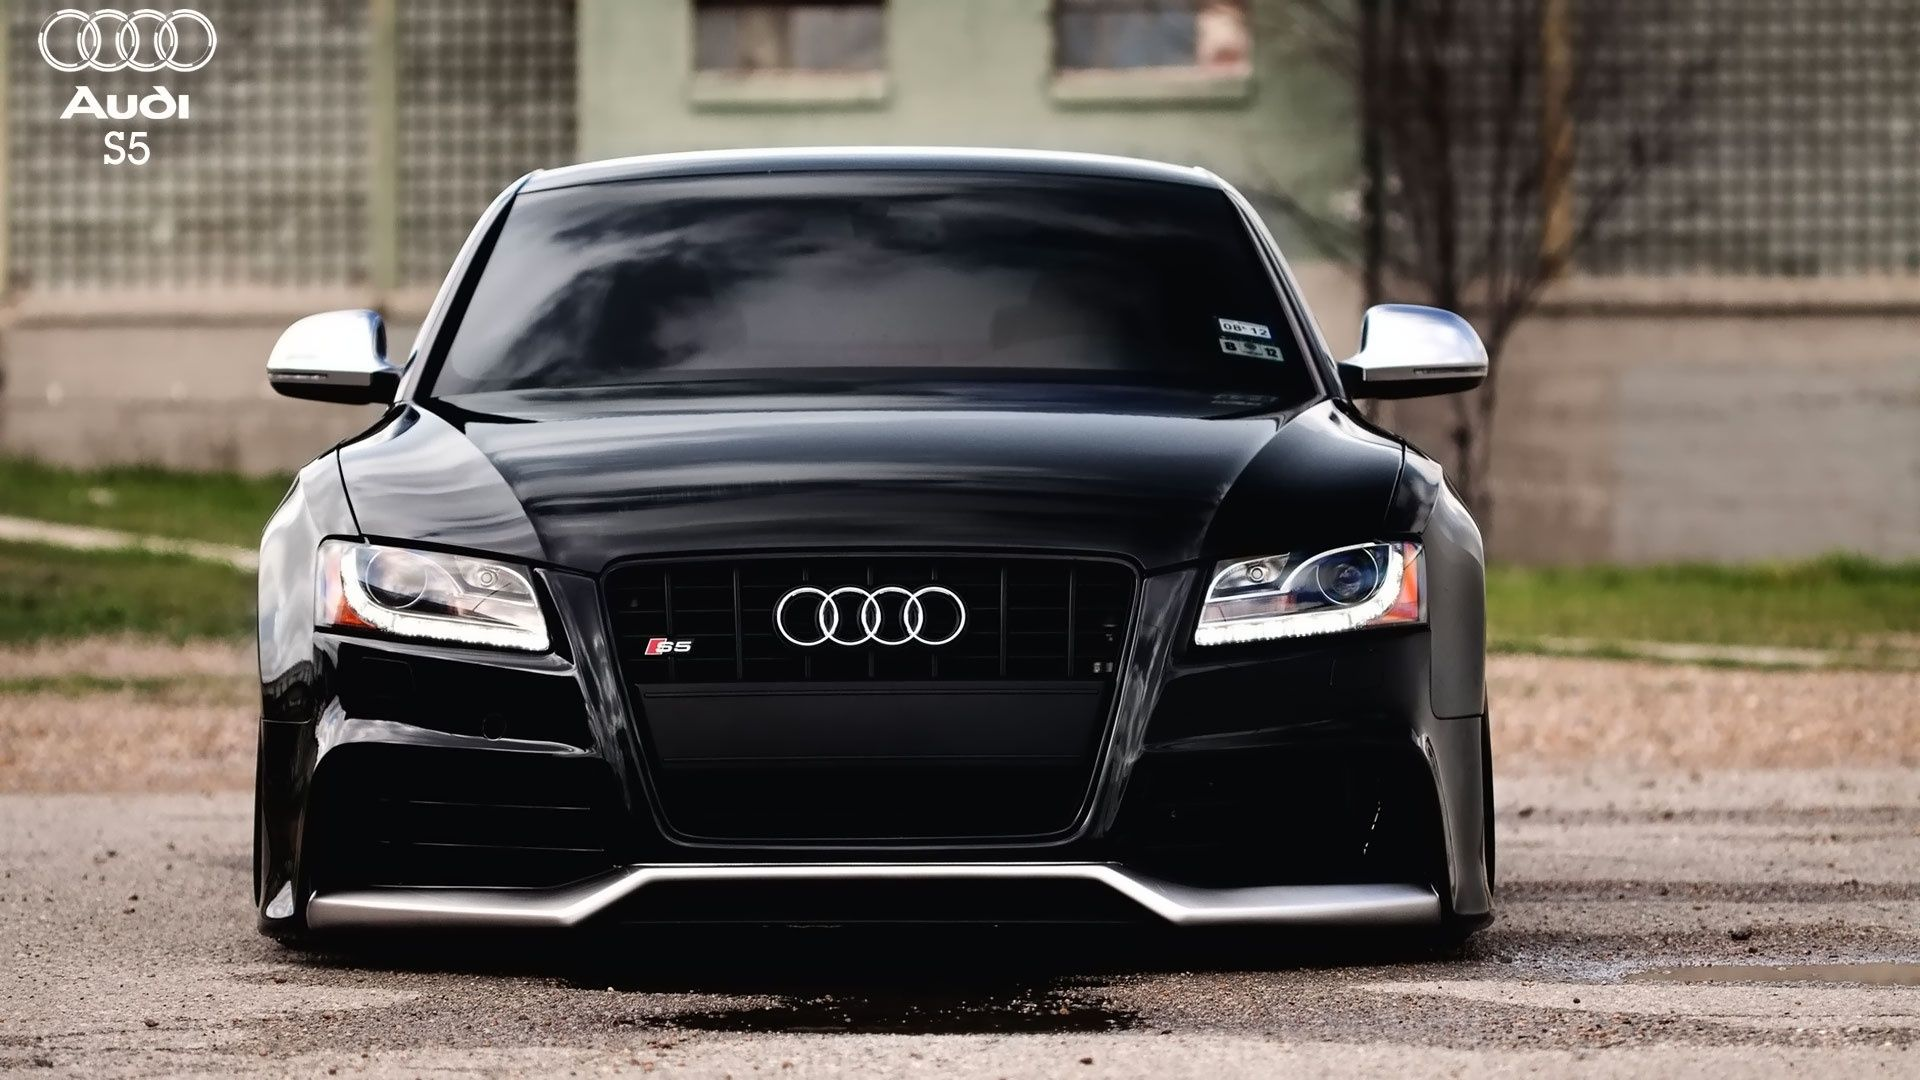 Audi rs5 tuned wallpaper hd image 2401 wallpaper hdwallphotos audi s5 audi a5 cars - Car wallpapers for galaxy s5 ...